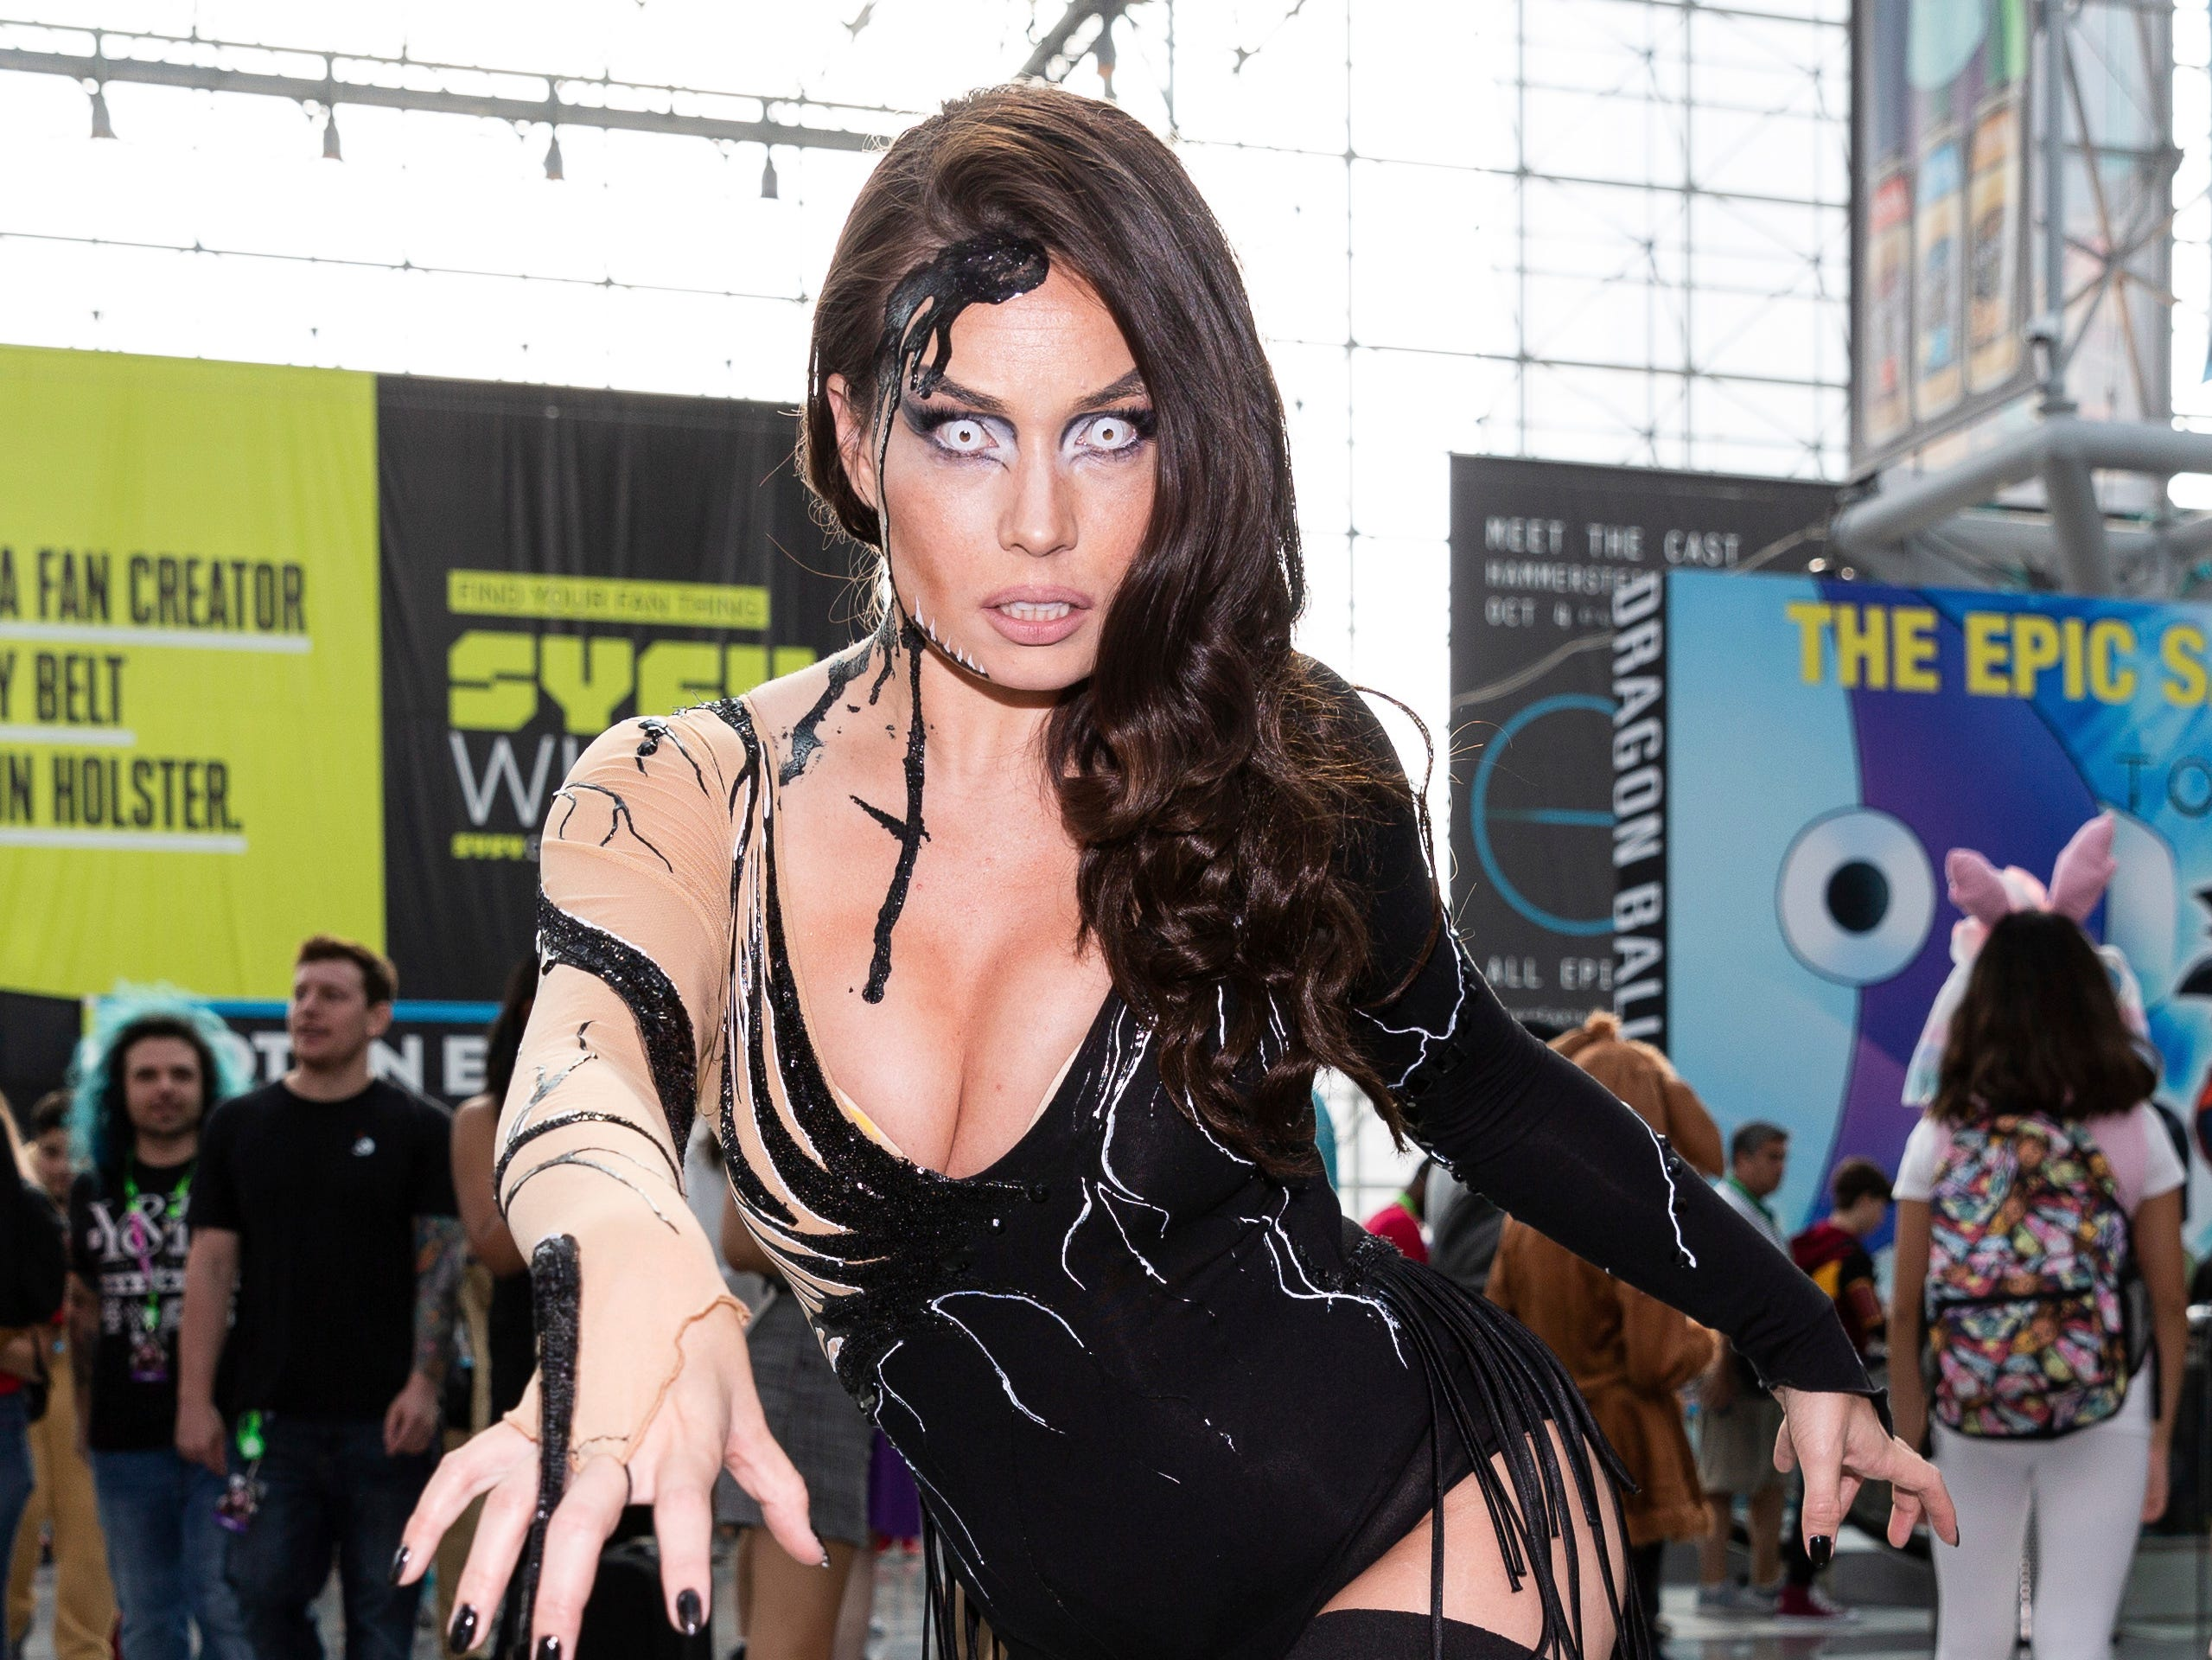 A fan dressed in costume poses for a photo during the first day of of New York Comic Con, Thursday, Oct. 4, 2018. (AP Photo/Steve Luciano)